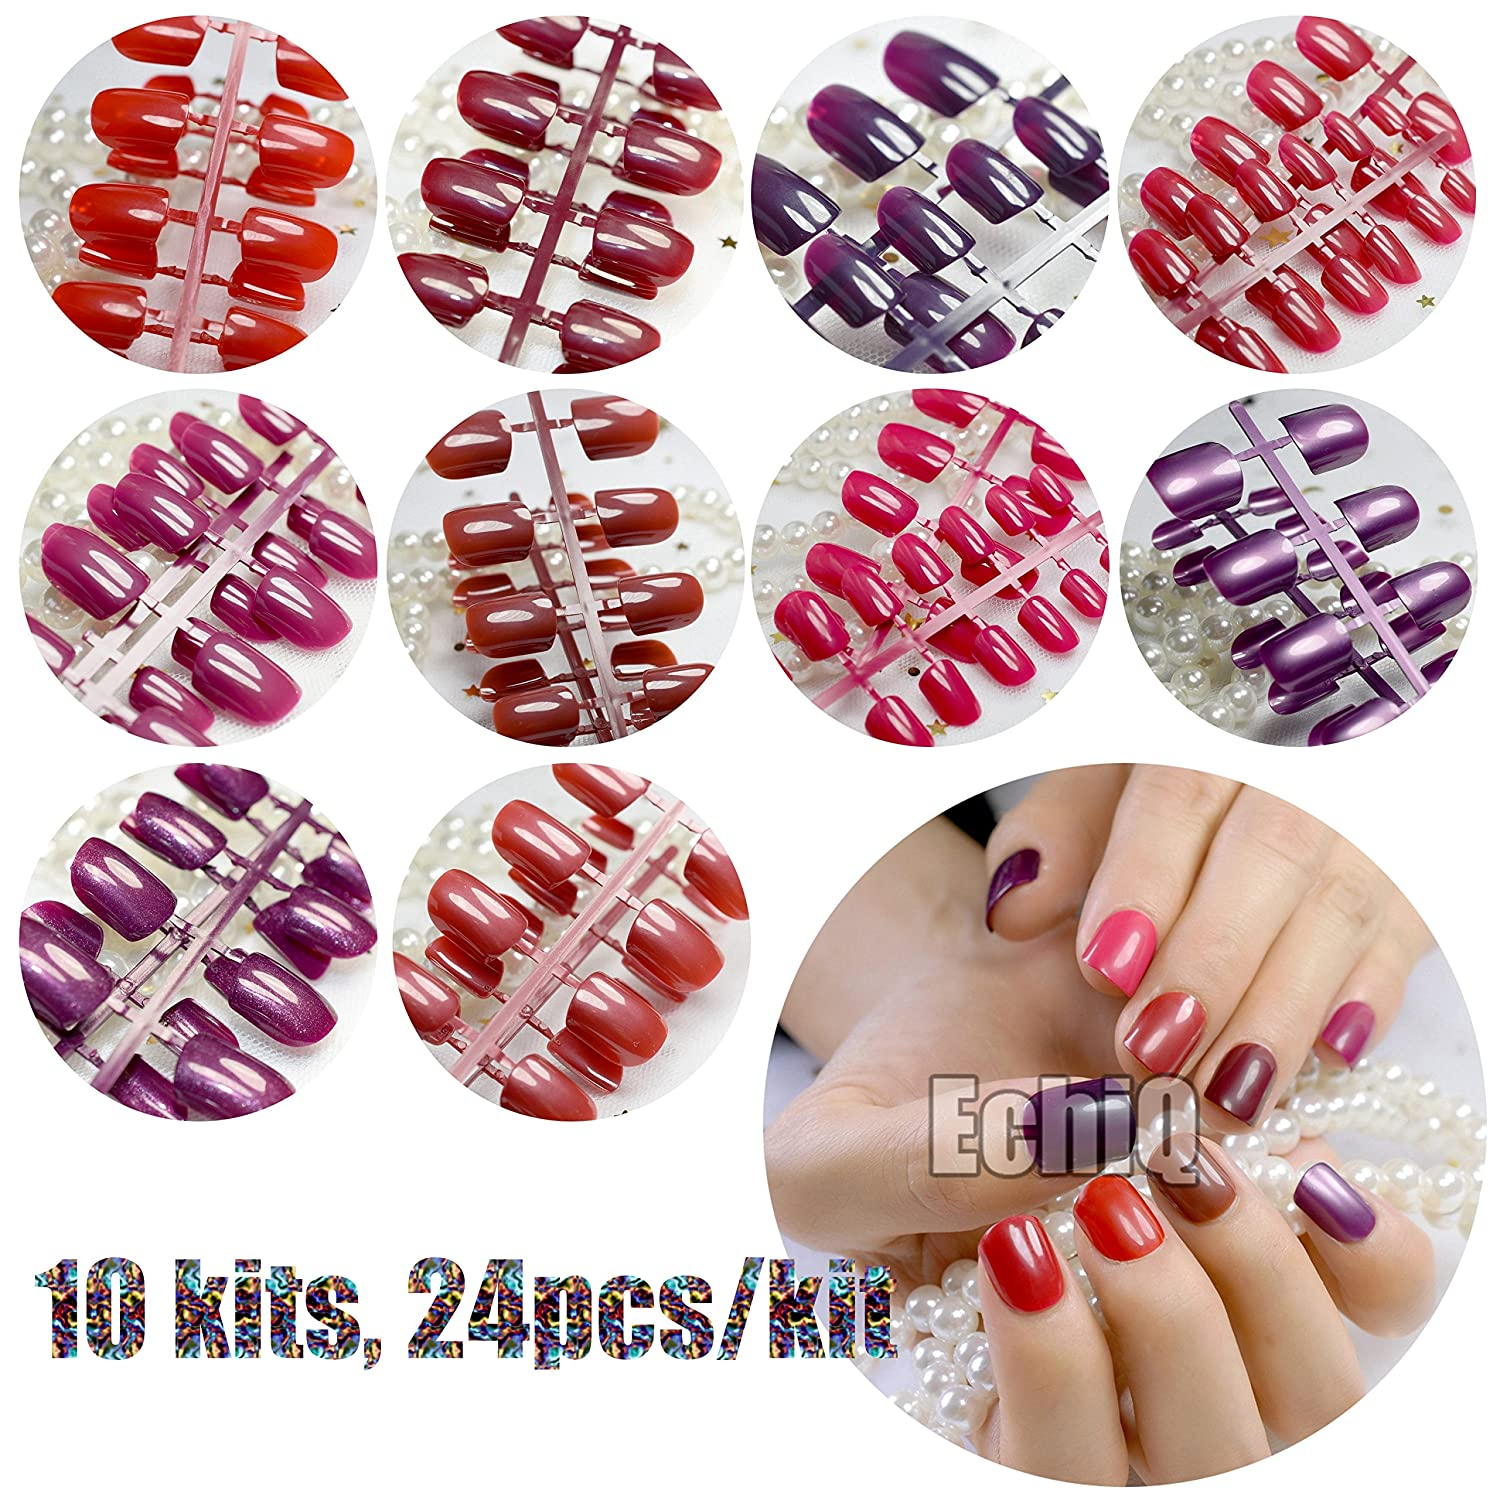 Amazon.com : CoolNail 240pcs False Nails Tips Short Full Cover Fake Artificial Nails Pure Candy Color Manicure Nail Tips Brown Shimmer Purple Red 10 Colors ...